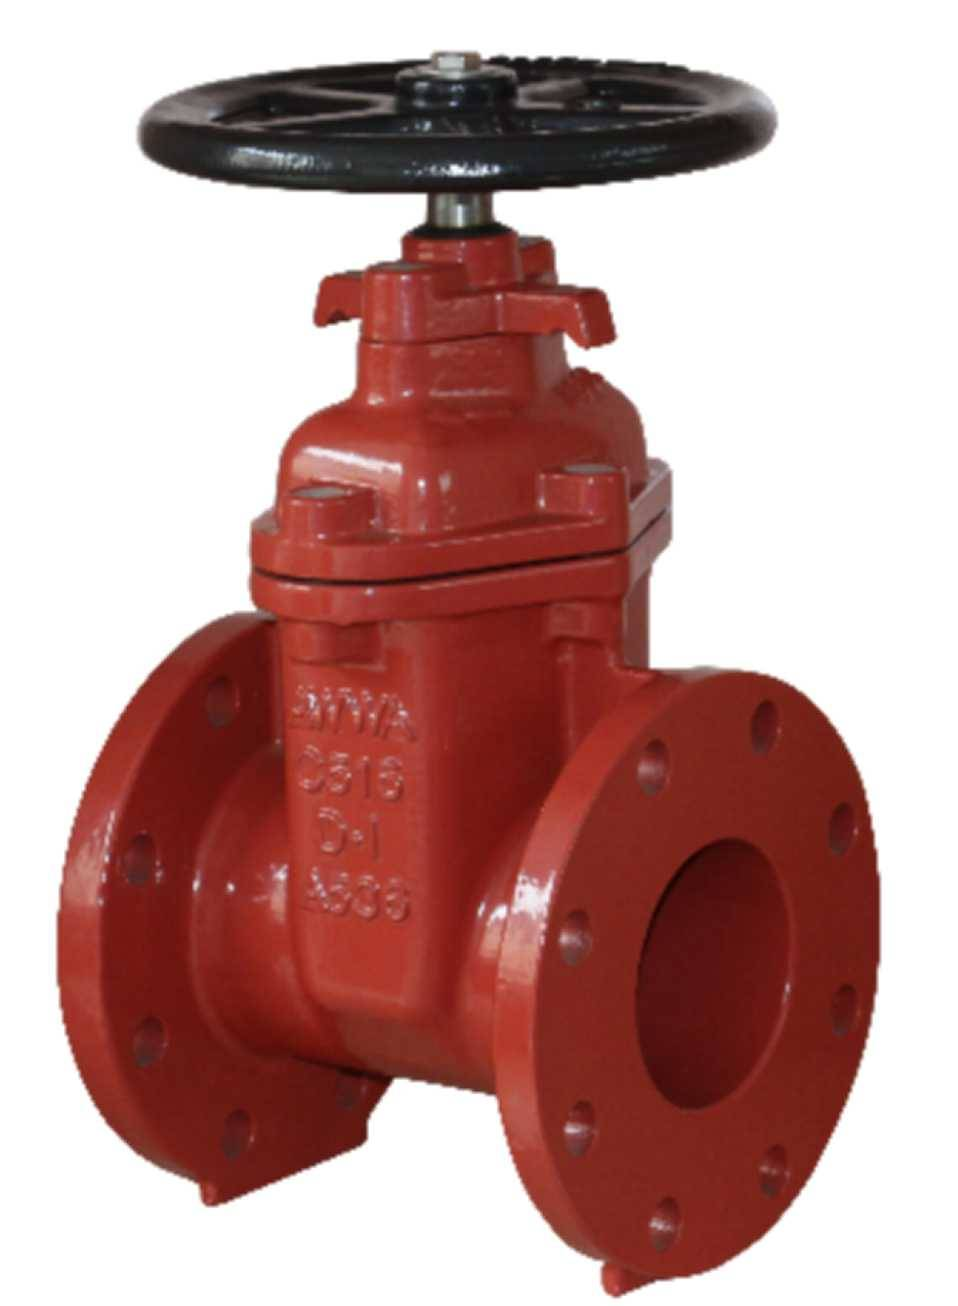 Flanged End NRS Resilient Seated Gate Valves-AWWA C515 UL FM Featured Image